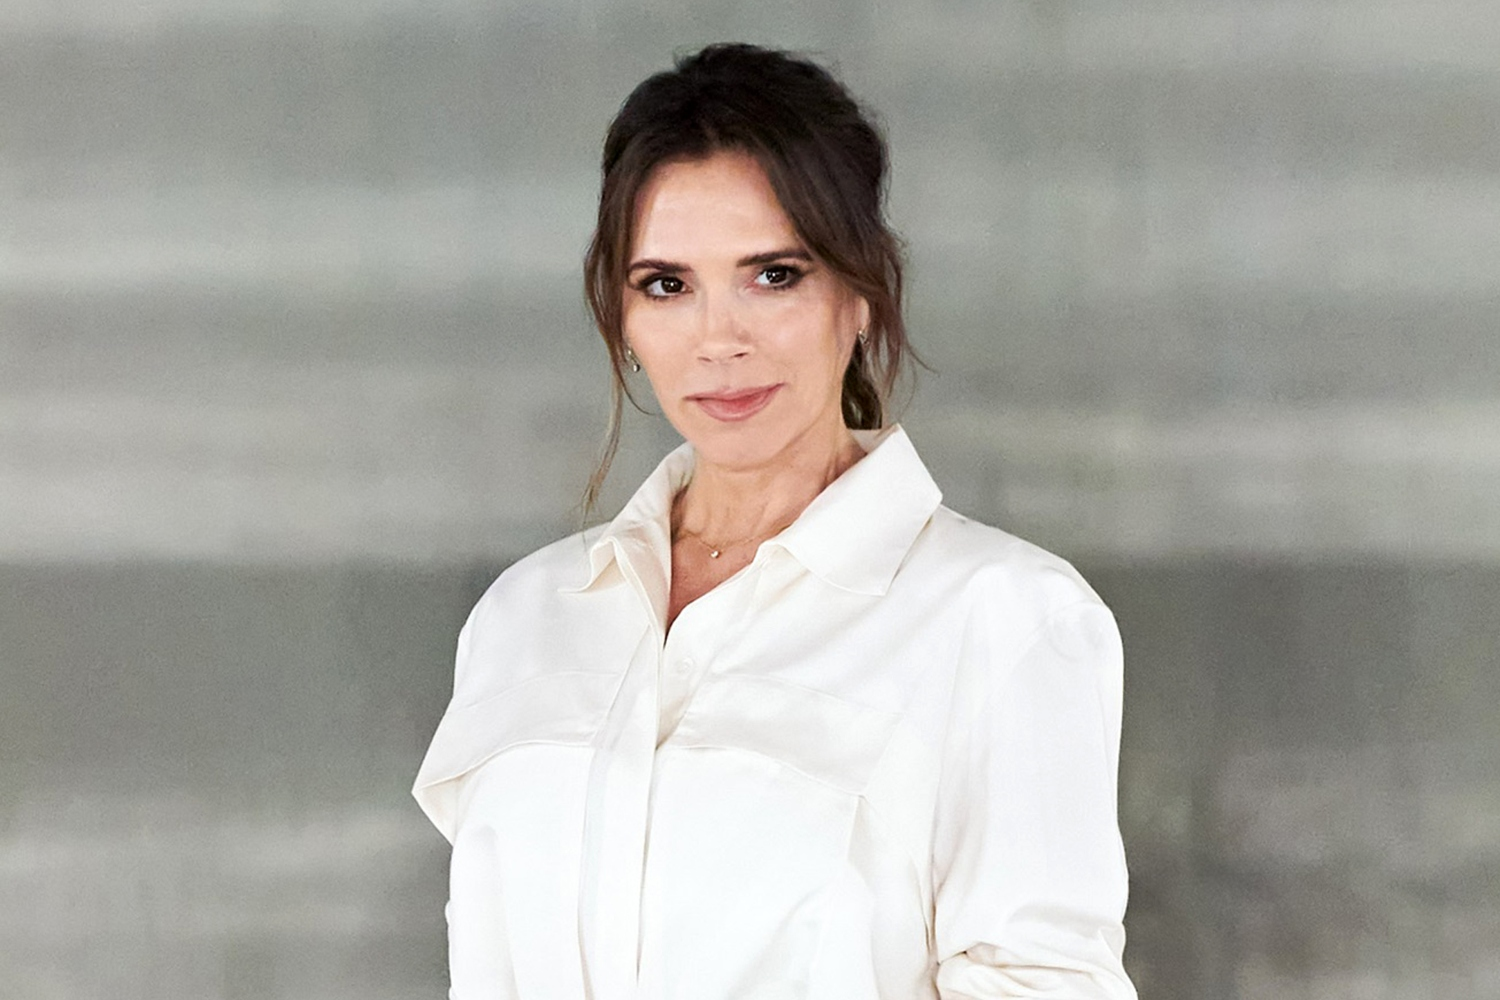 Victoria Beckham will show off cheeky humour by 'selling sex toys'